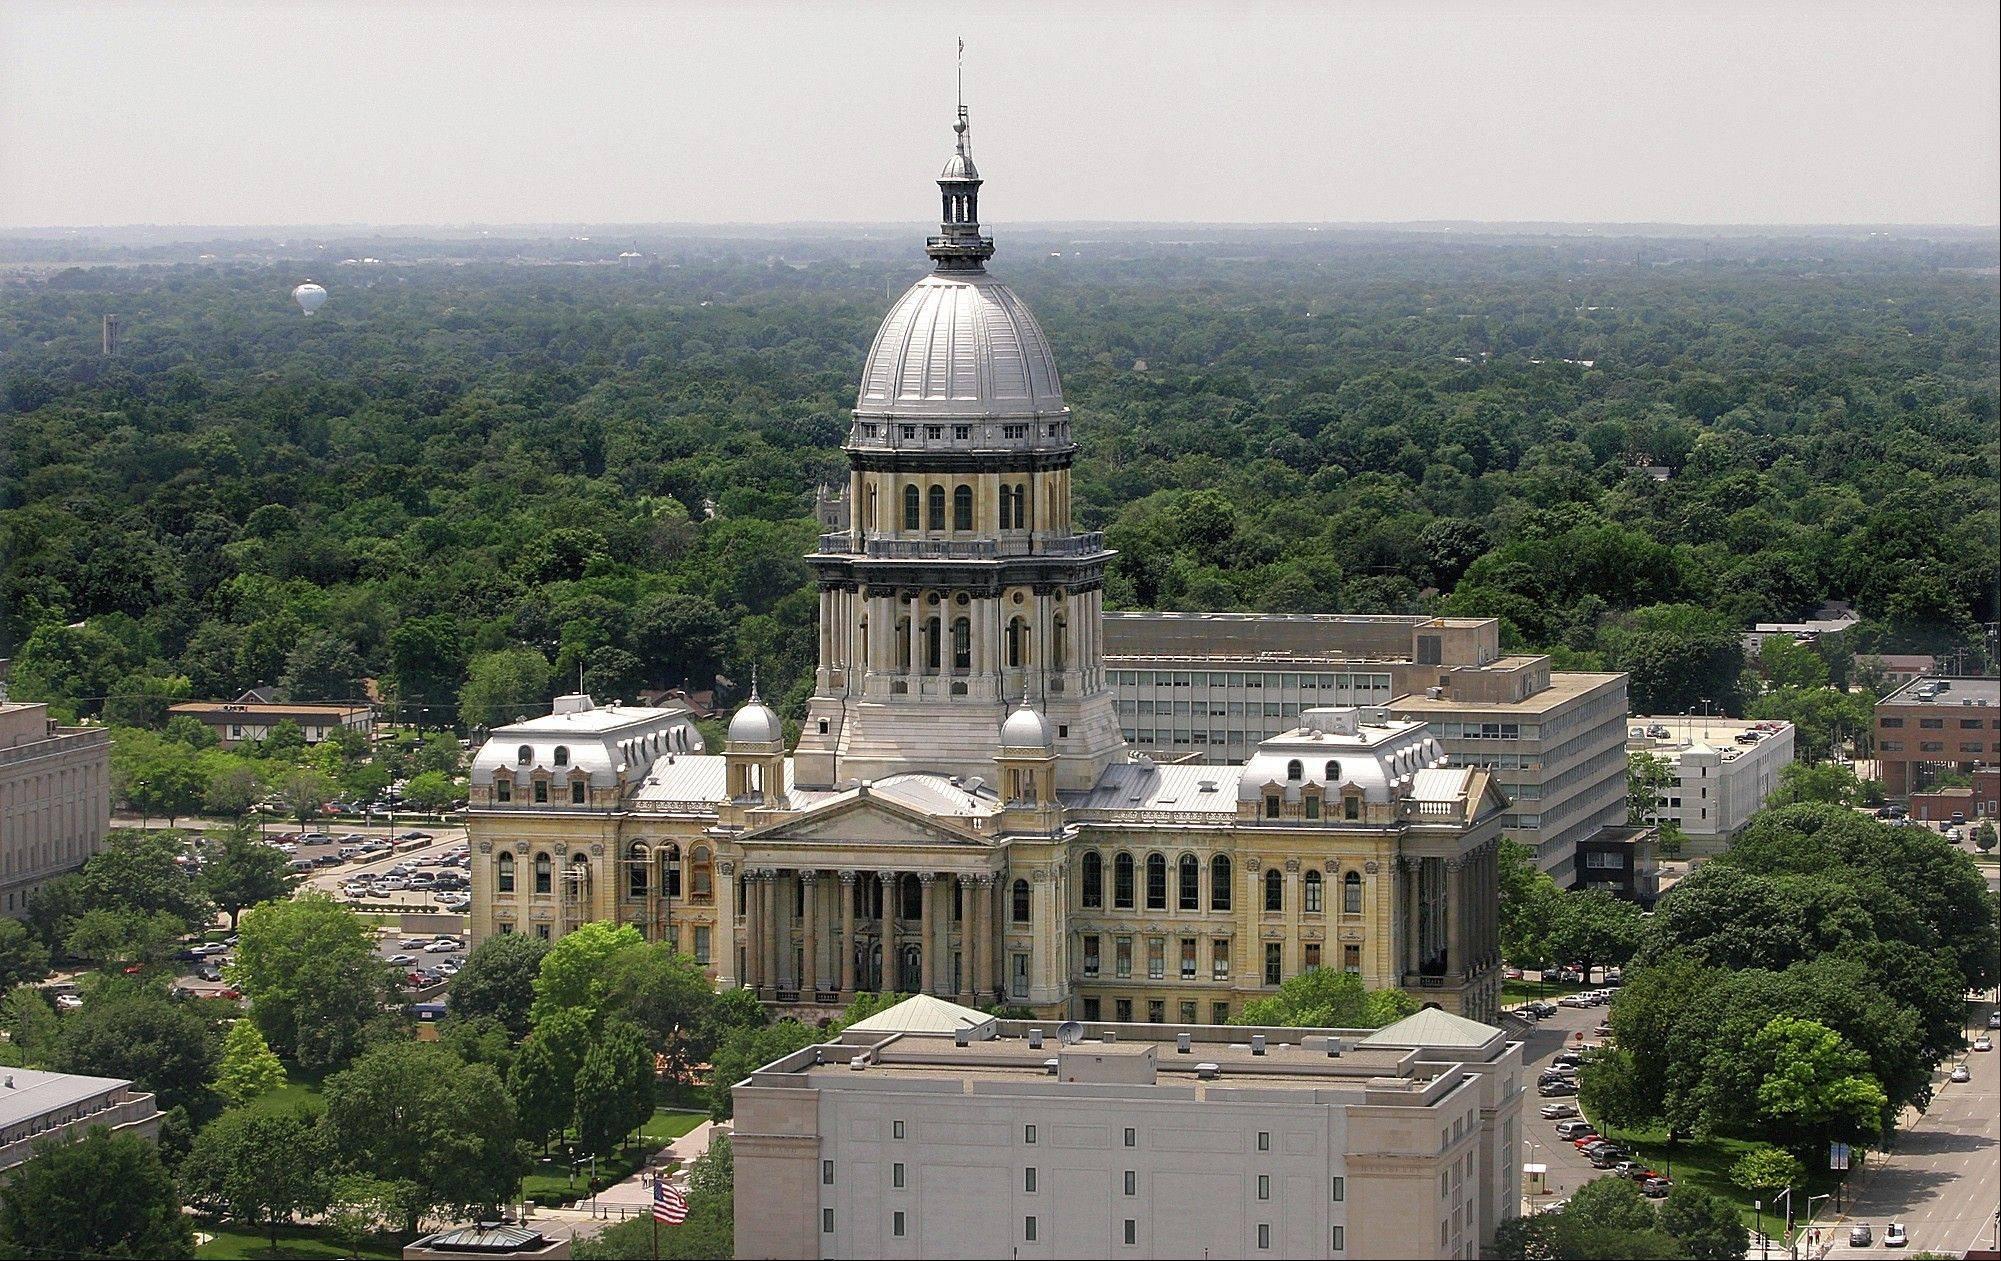 The Illinois Senate approved same-sex marriage Thursday, sending the plan to the House.